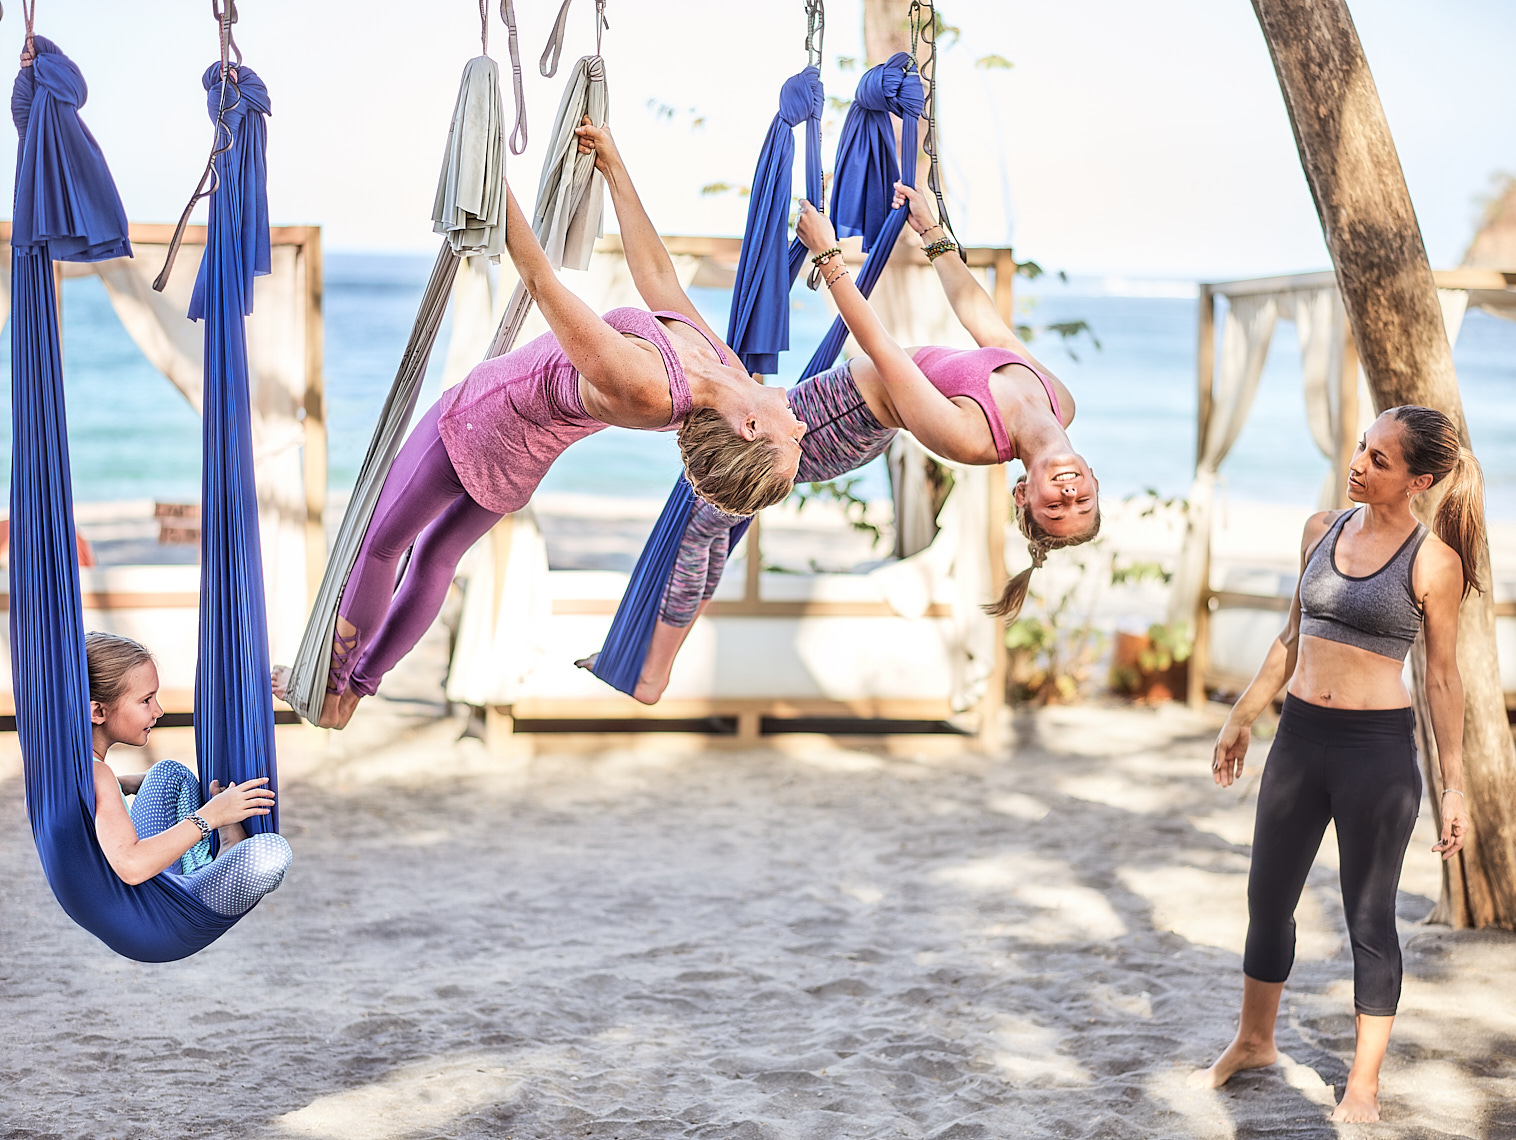 Kevin Steele - a family tries aerial yoga fitness on the sand